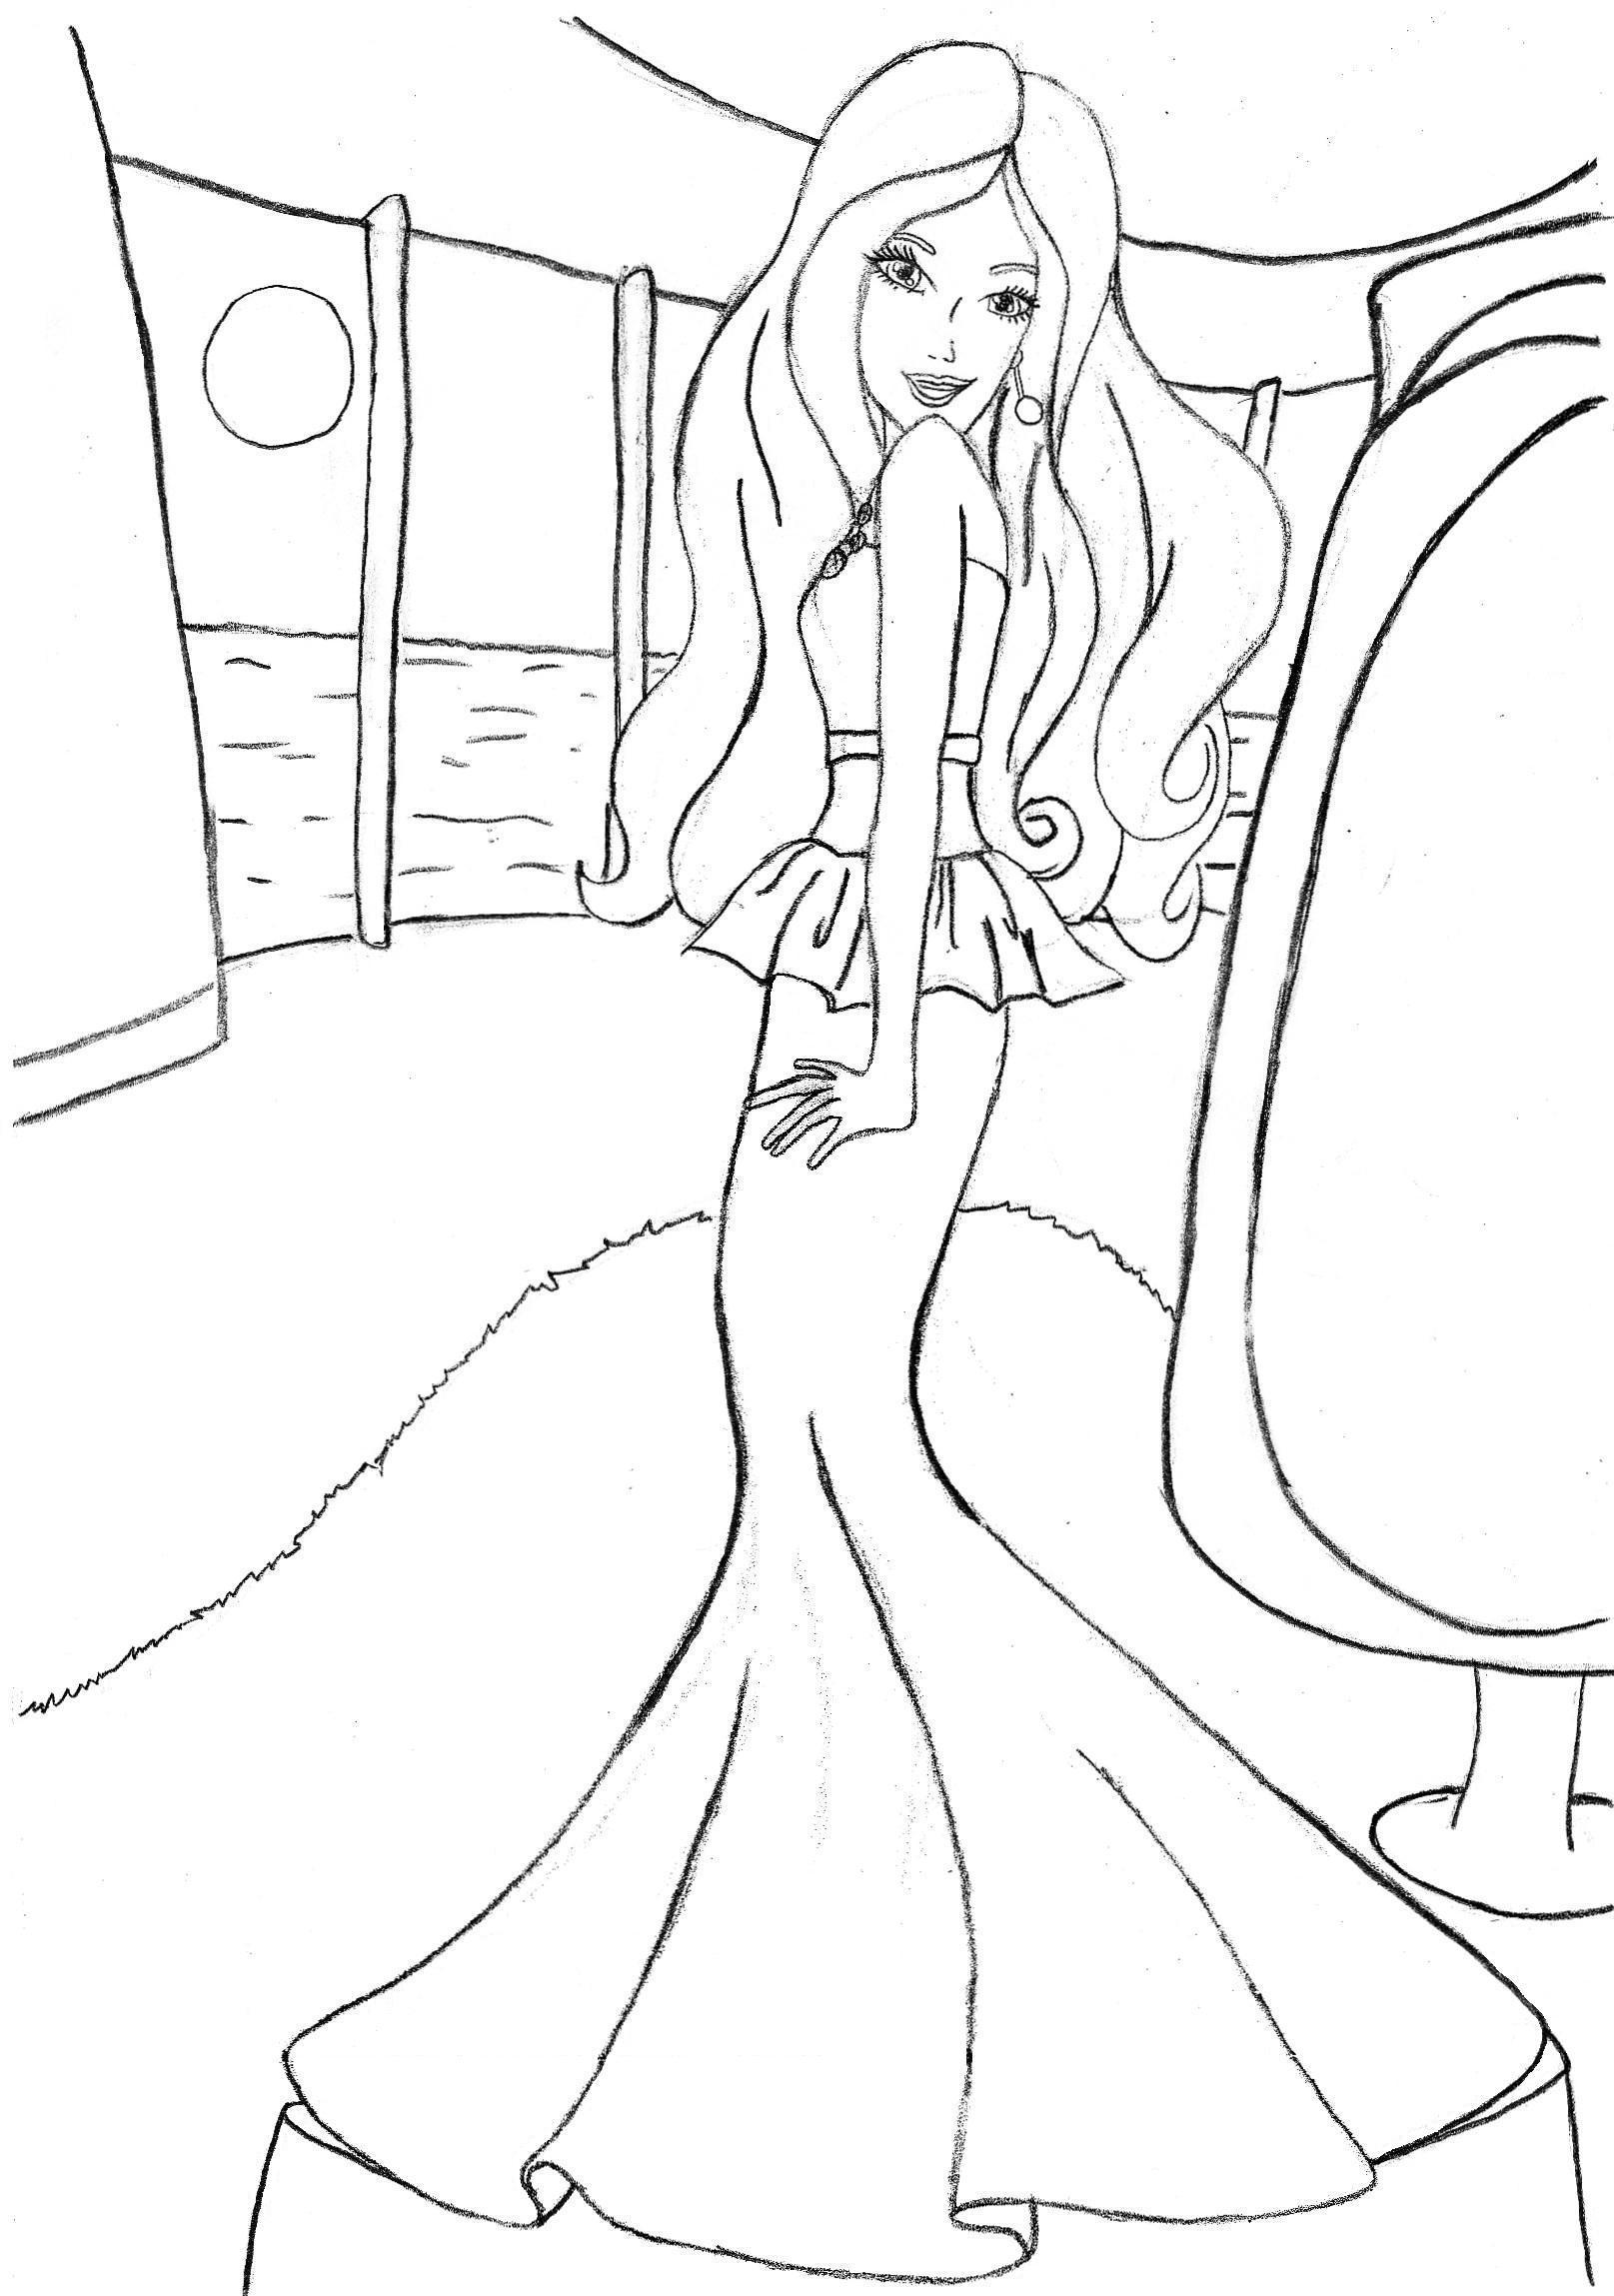 Coloring sheet barbie - Image Coloring Pages Online Free Printable Barbie Coloring Pages Fresh In Painting Free Coloring Kids Jpg Barbie Movies Wiki Fandom Powered By Wikia